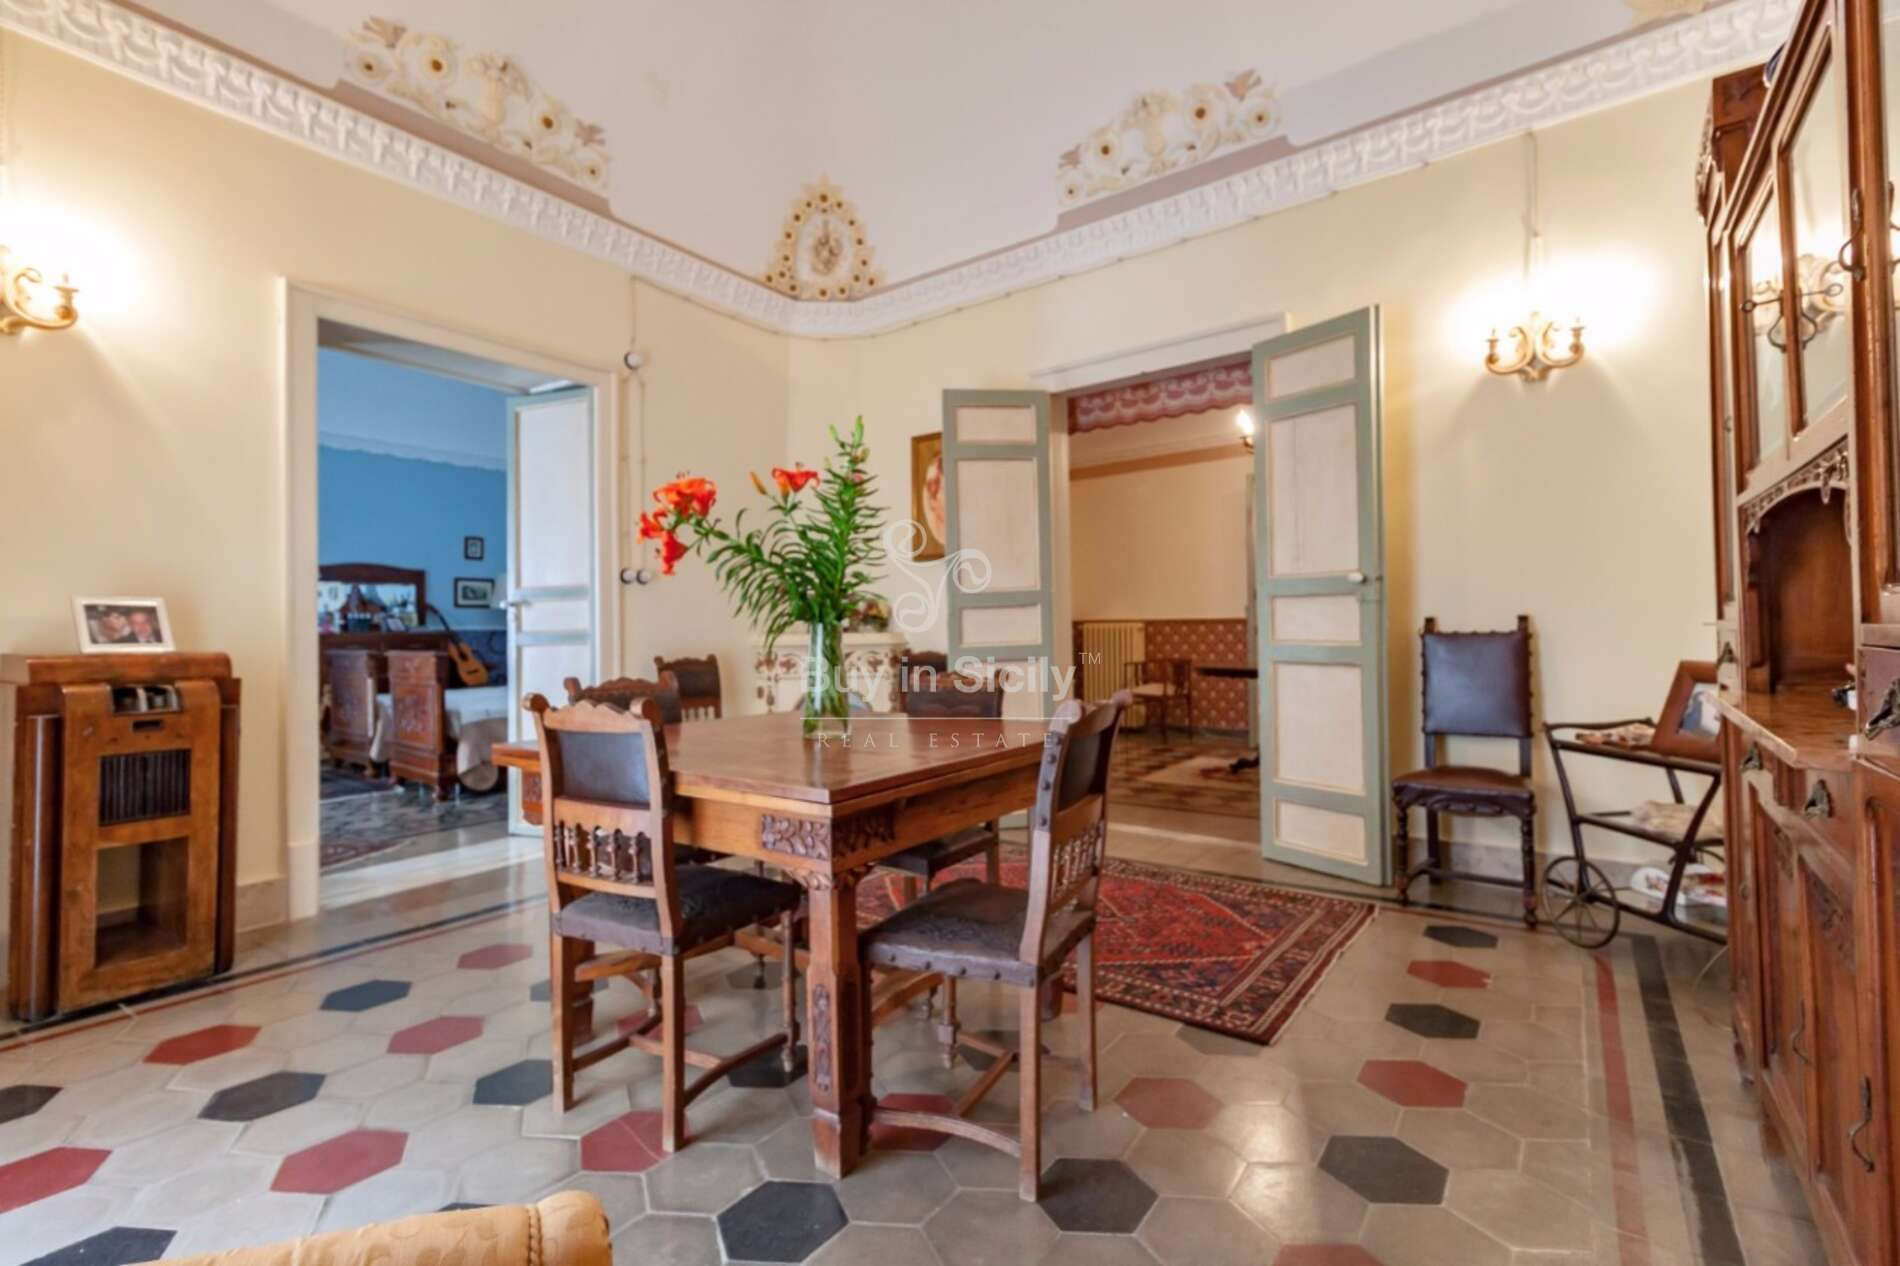 Aristocratic historic building in the heart of the historic centre of Piazza Armerina